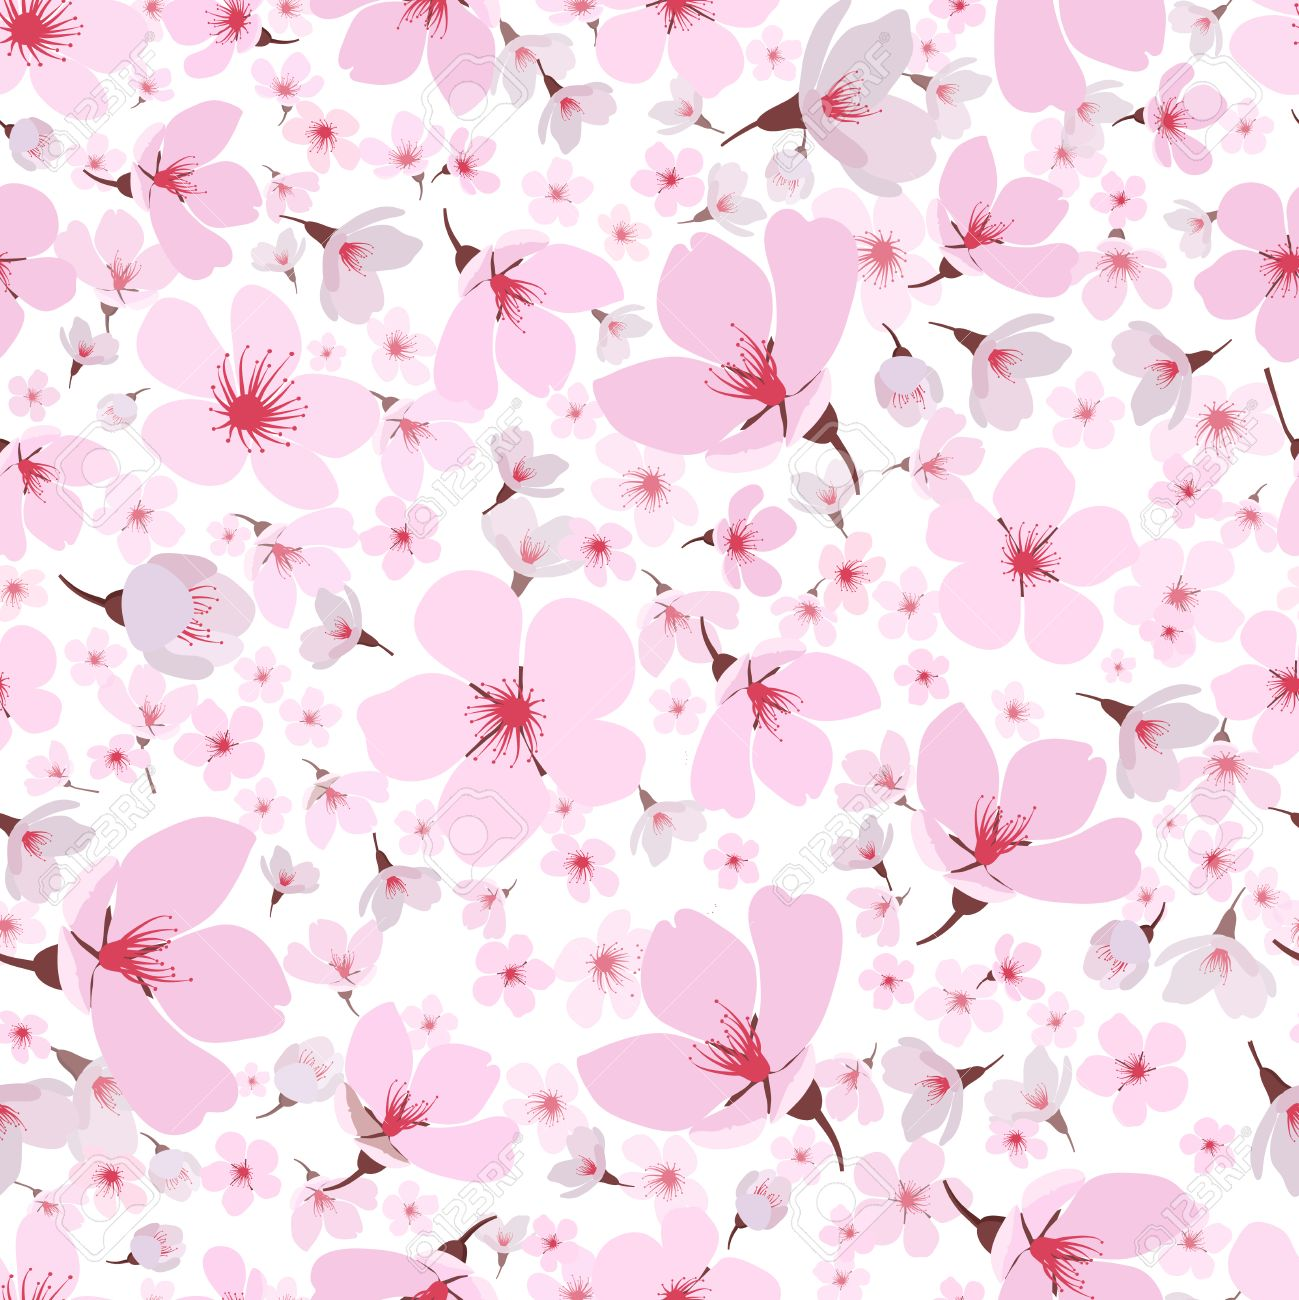 Seamless background pattern of pink Sakura blossom or Japanese flowering cherry symbolic of Spring in a random arrangement on a white background  square format suitable for textile  wallpaper or tiles Stock Vector - 27843028